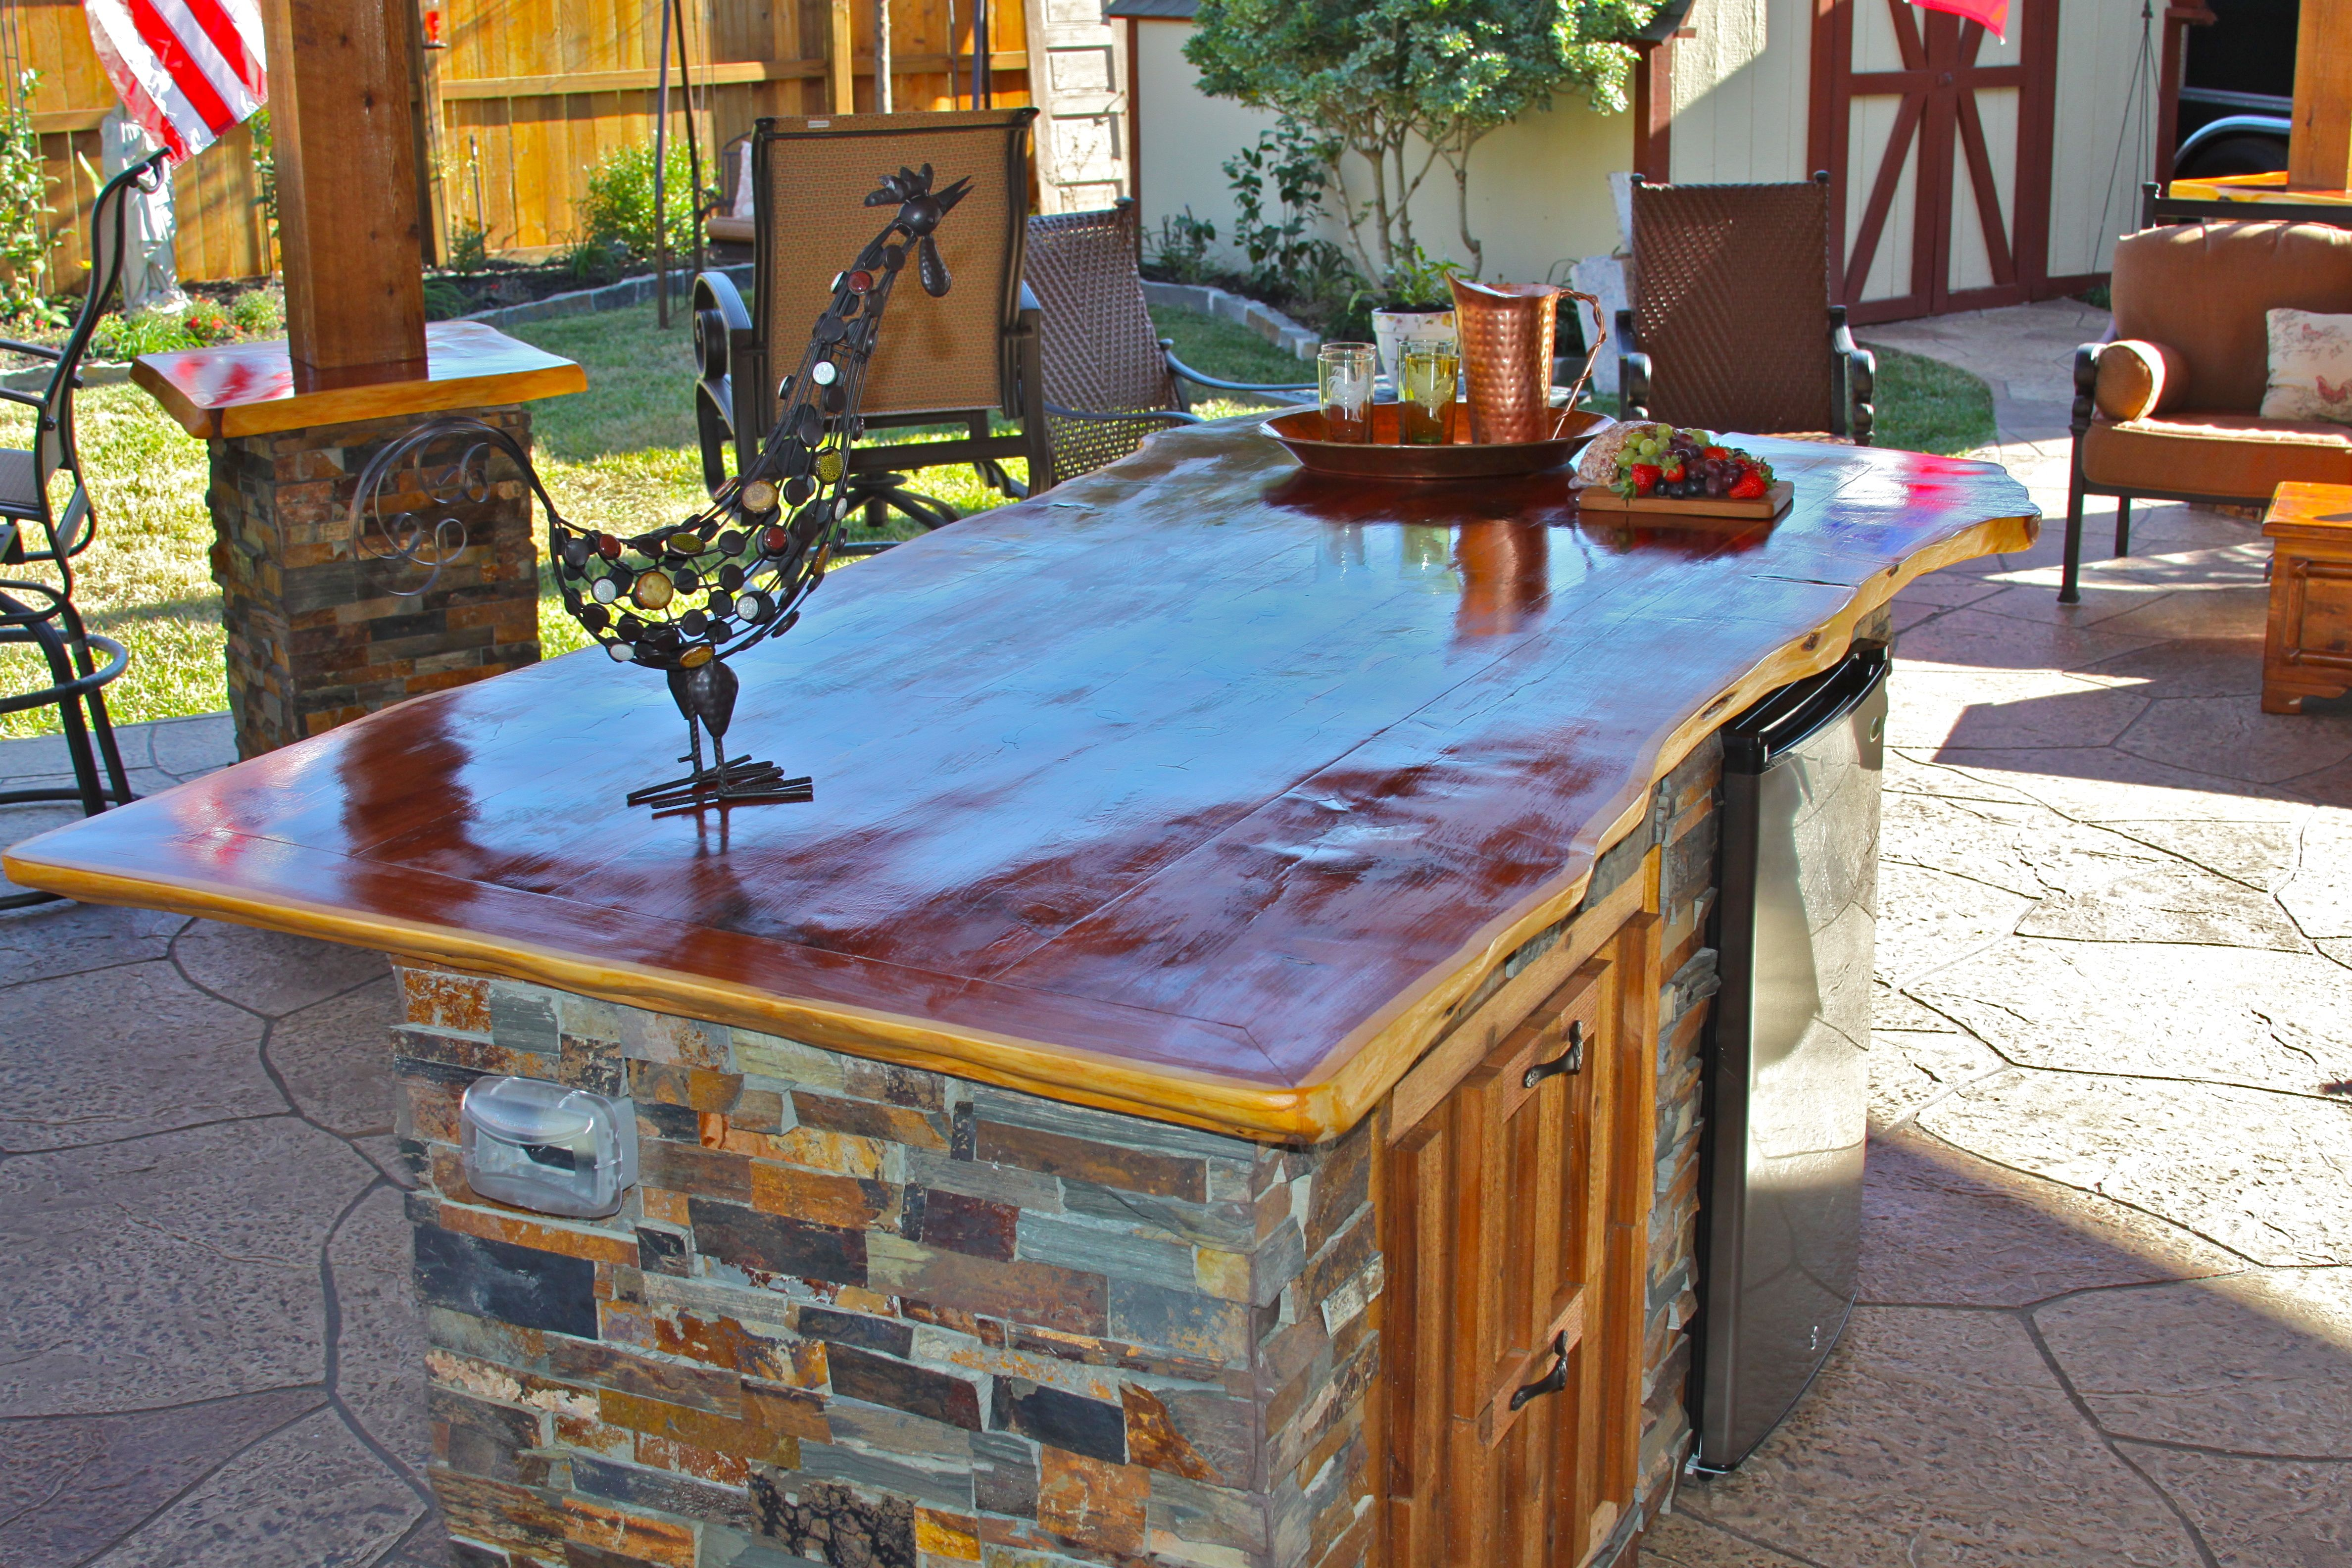 gorgeous kitchen island with images rustic outdoor kitchens outdoor kitchen patio on outdoor kitchen island id=96050